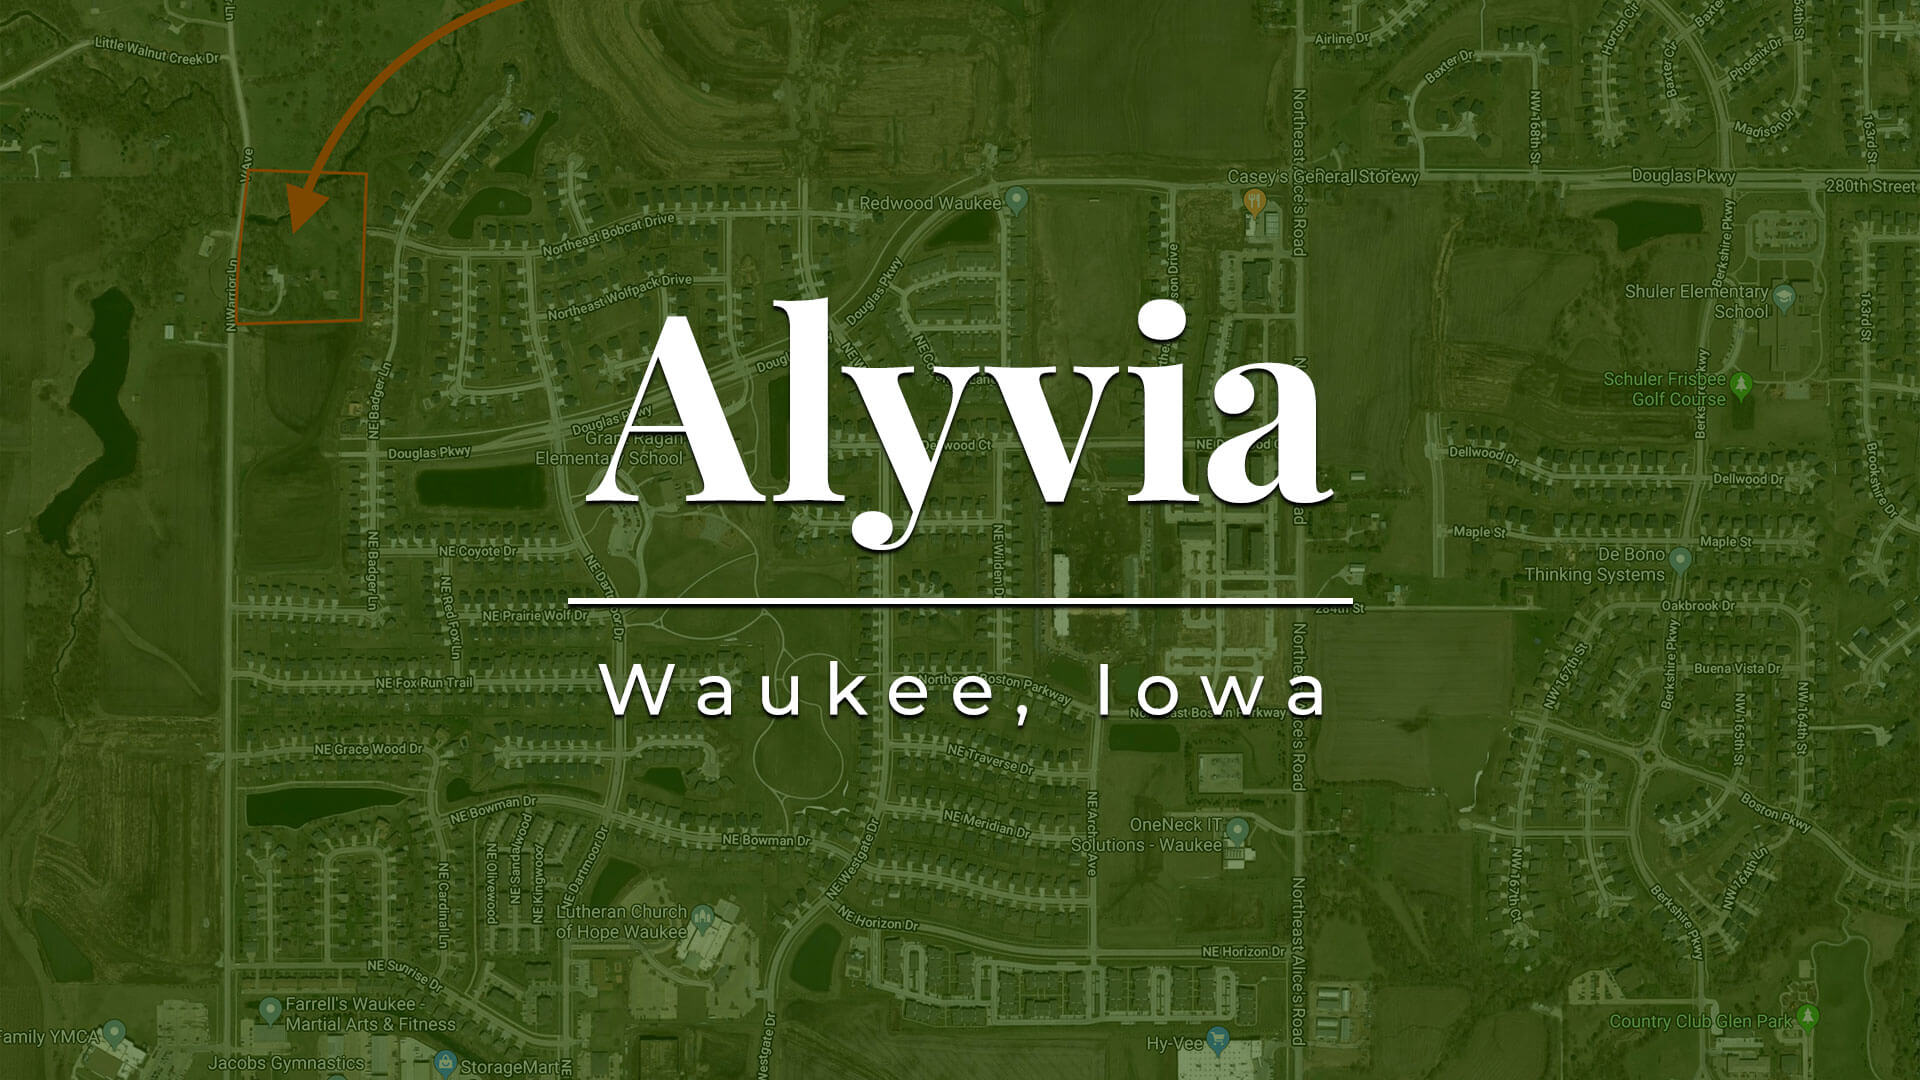 Alyvia Development Lots for Sale in Waukee, Iowa